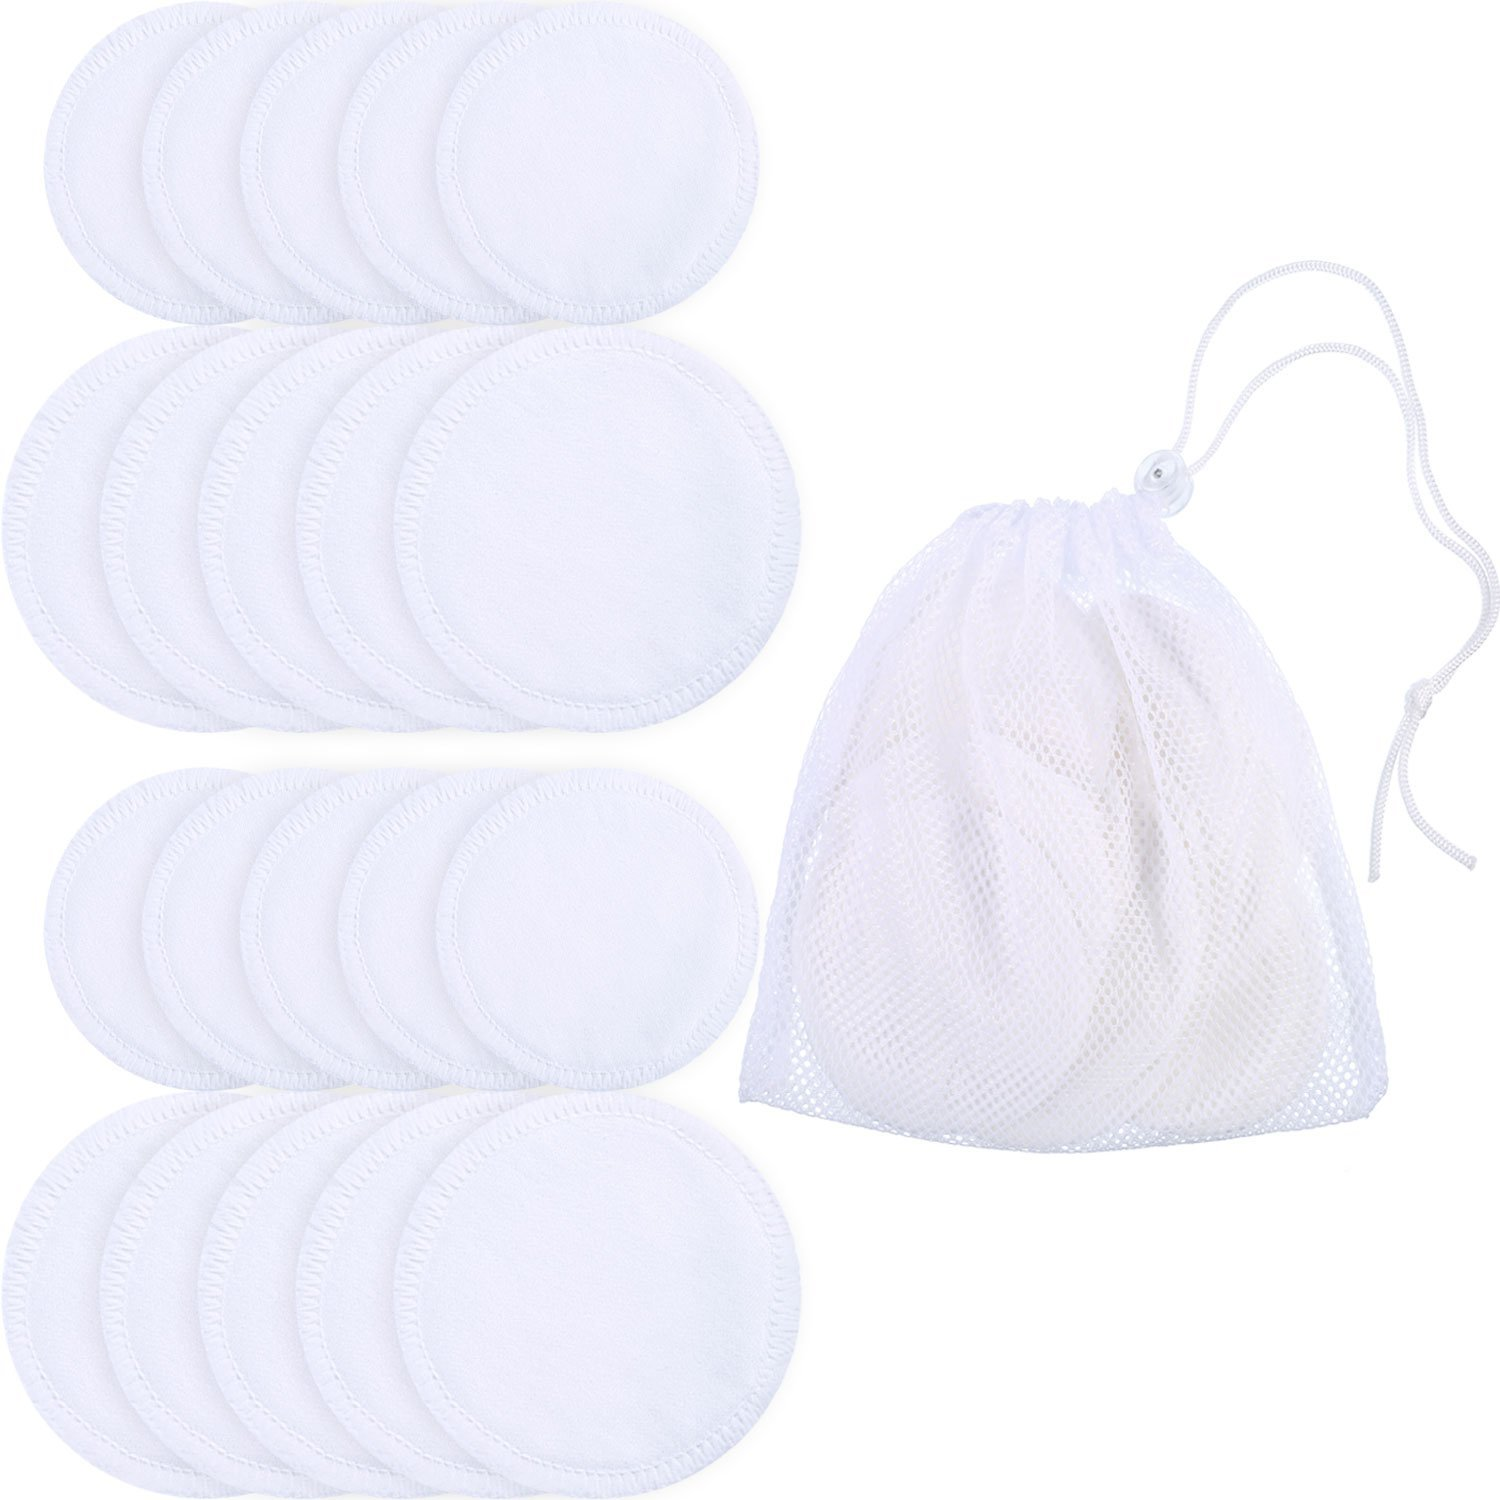 20 Pieces Makeup Remover Pads Bamboo Facial Toner Pads Reusable Washable Skin Care Cloth Cleansing Wipes in Laundry Bag (White, 3.15 and 4 Inches) Bememo